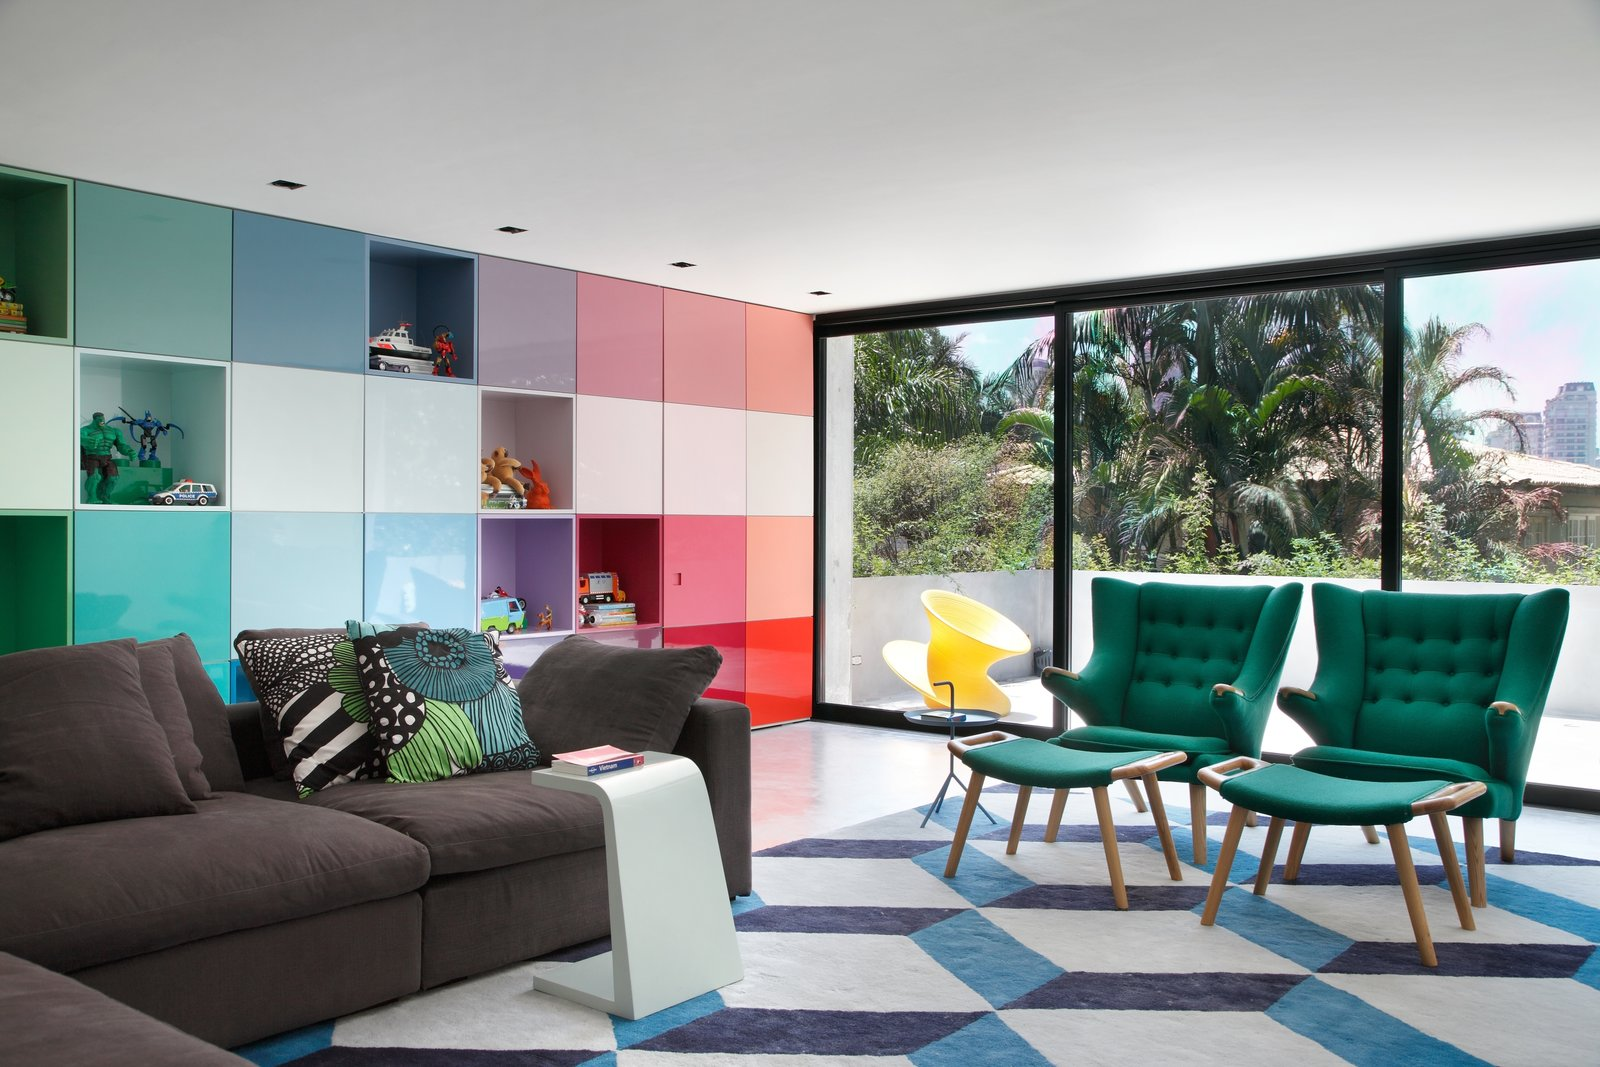 6 modern paint colors that make a bold statement dwell